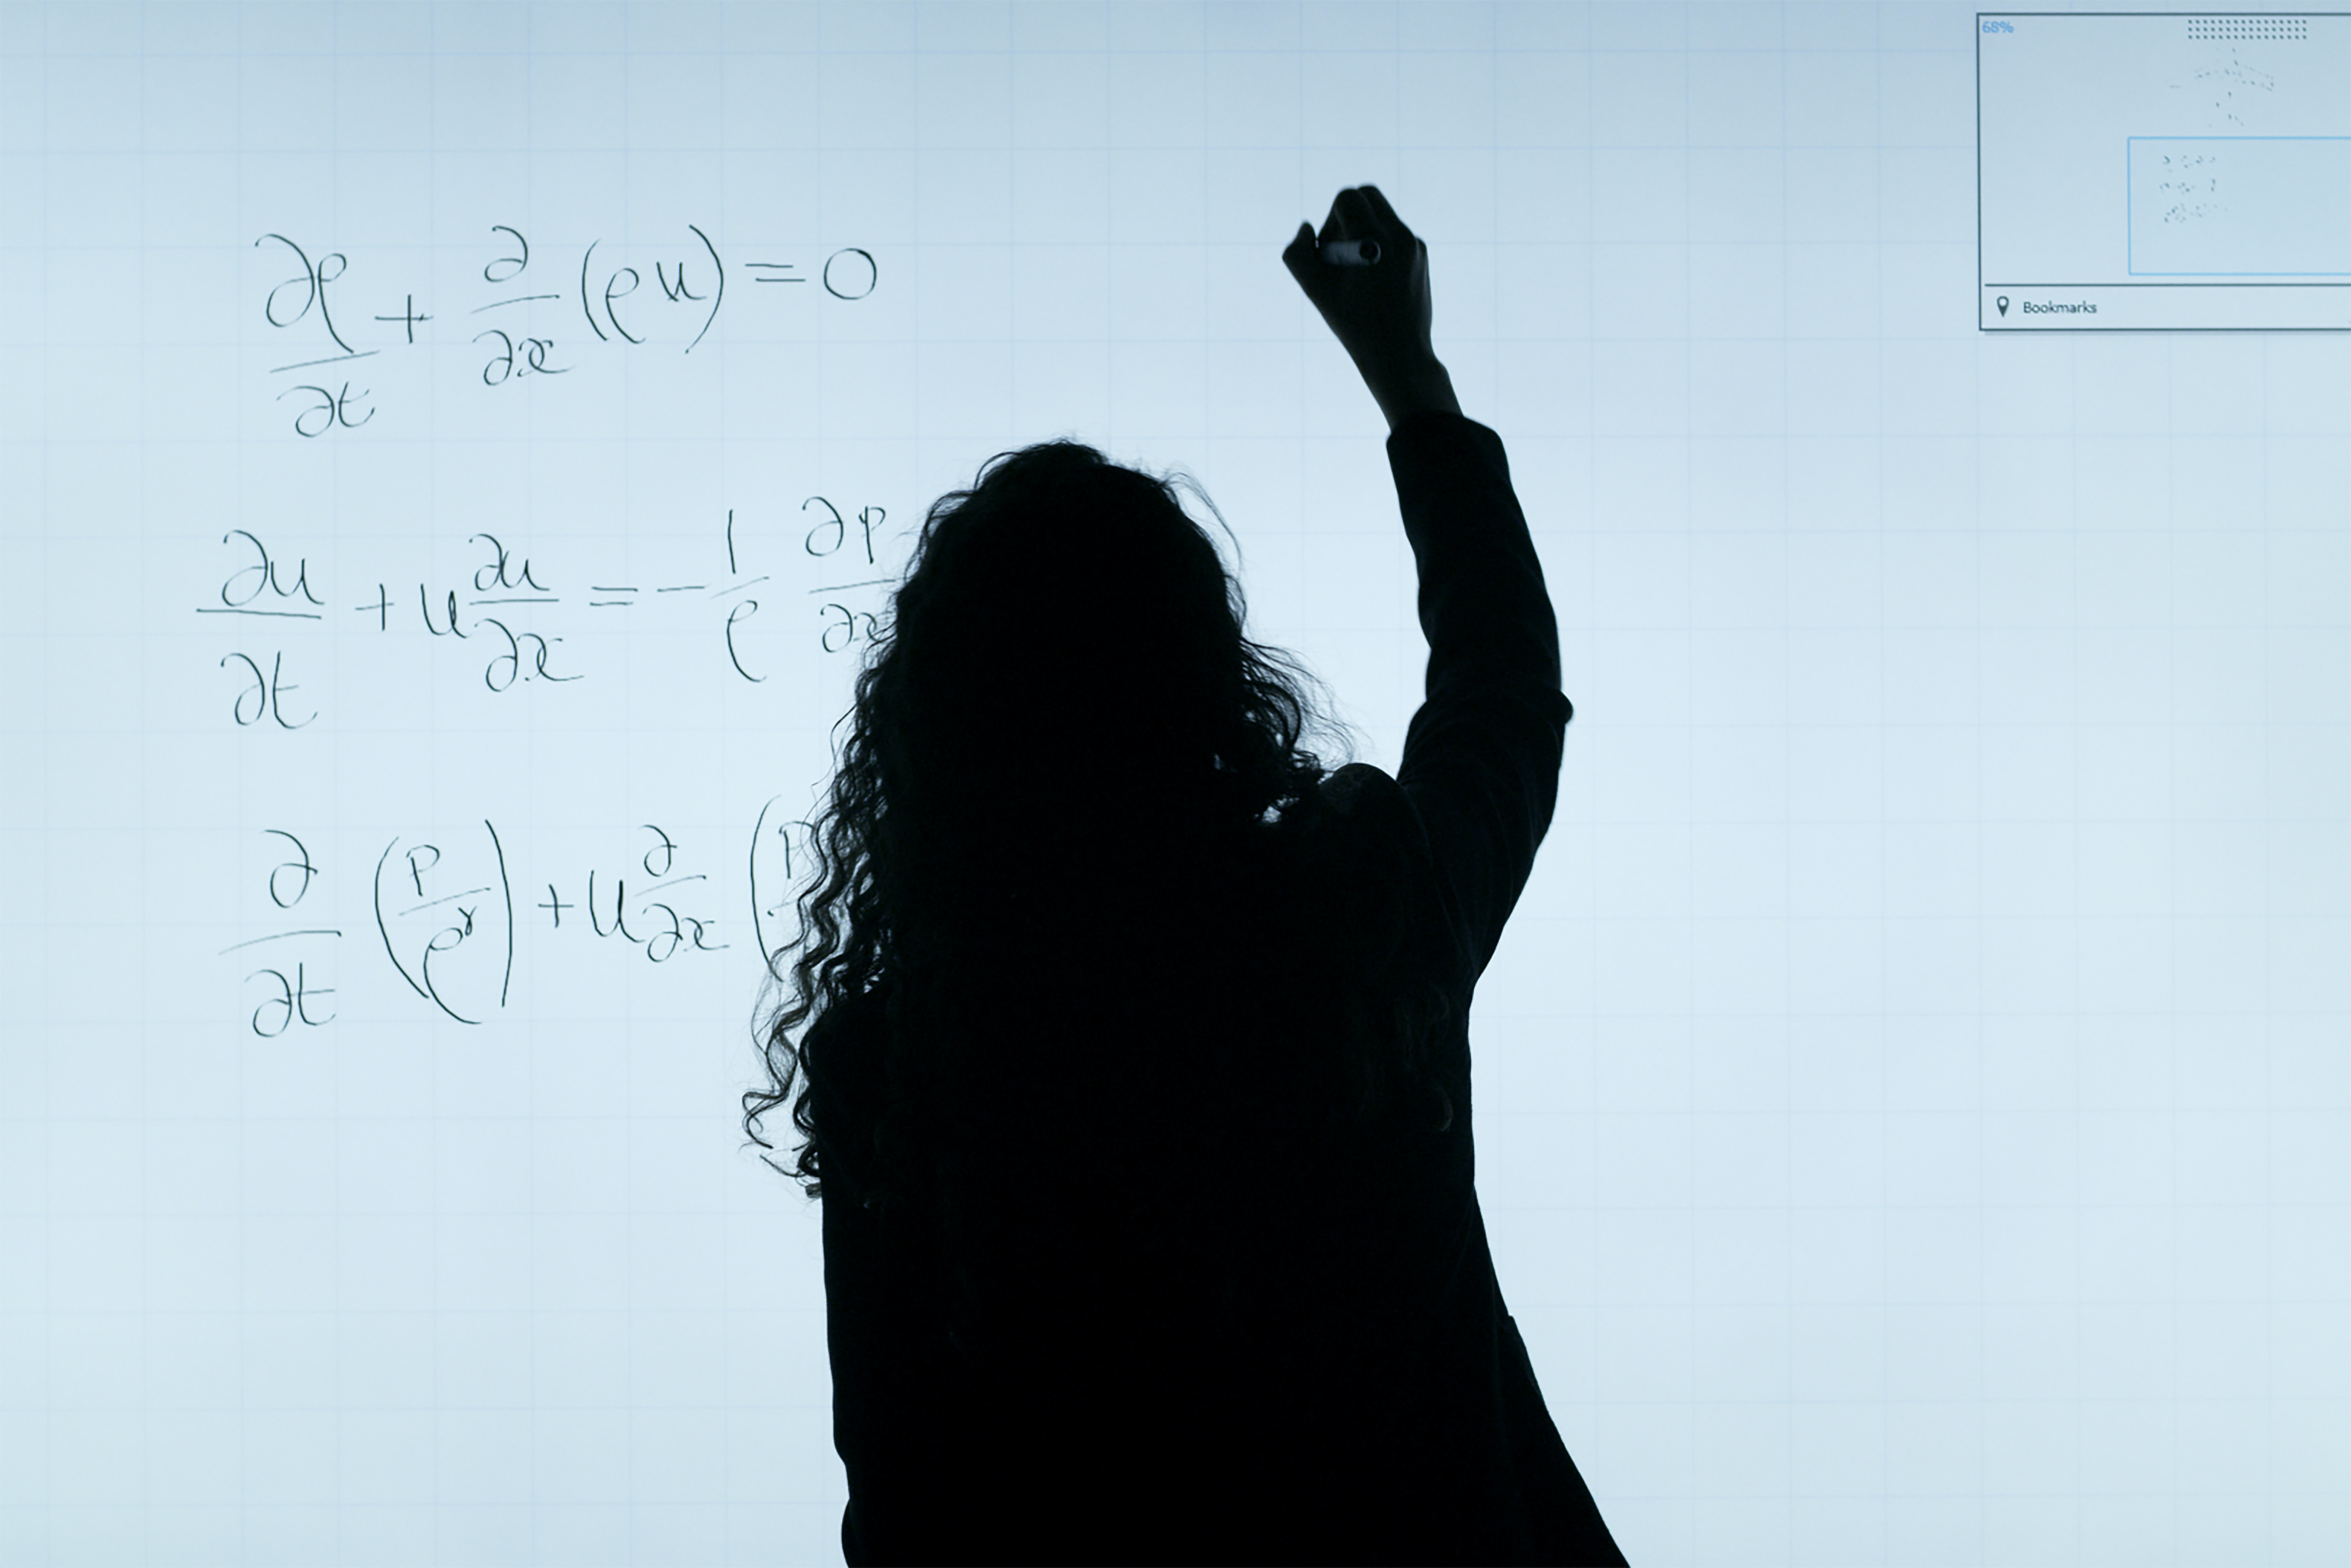 Woman writing equations on a whiteboard